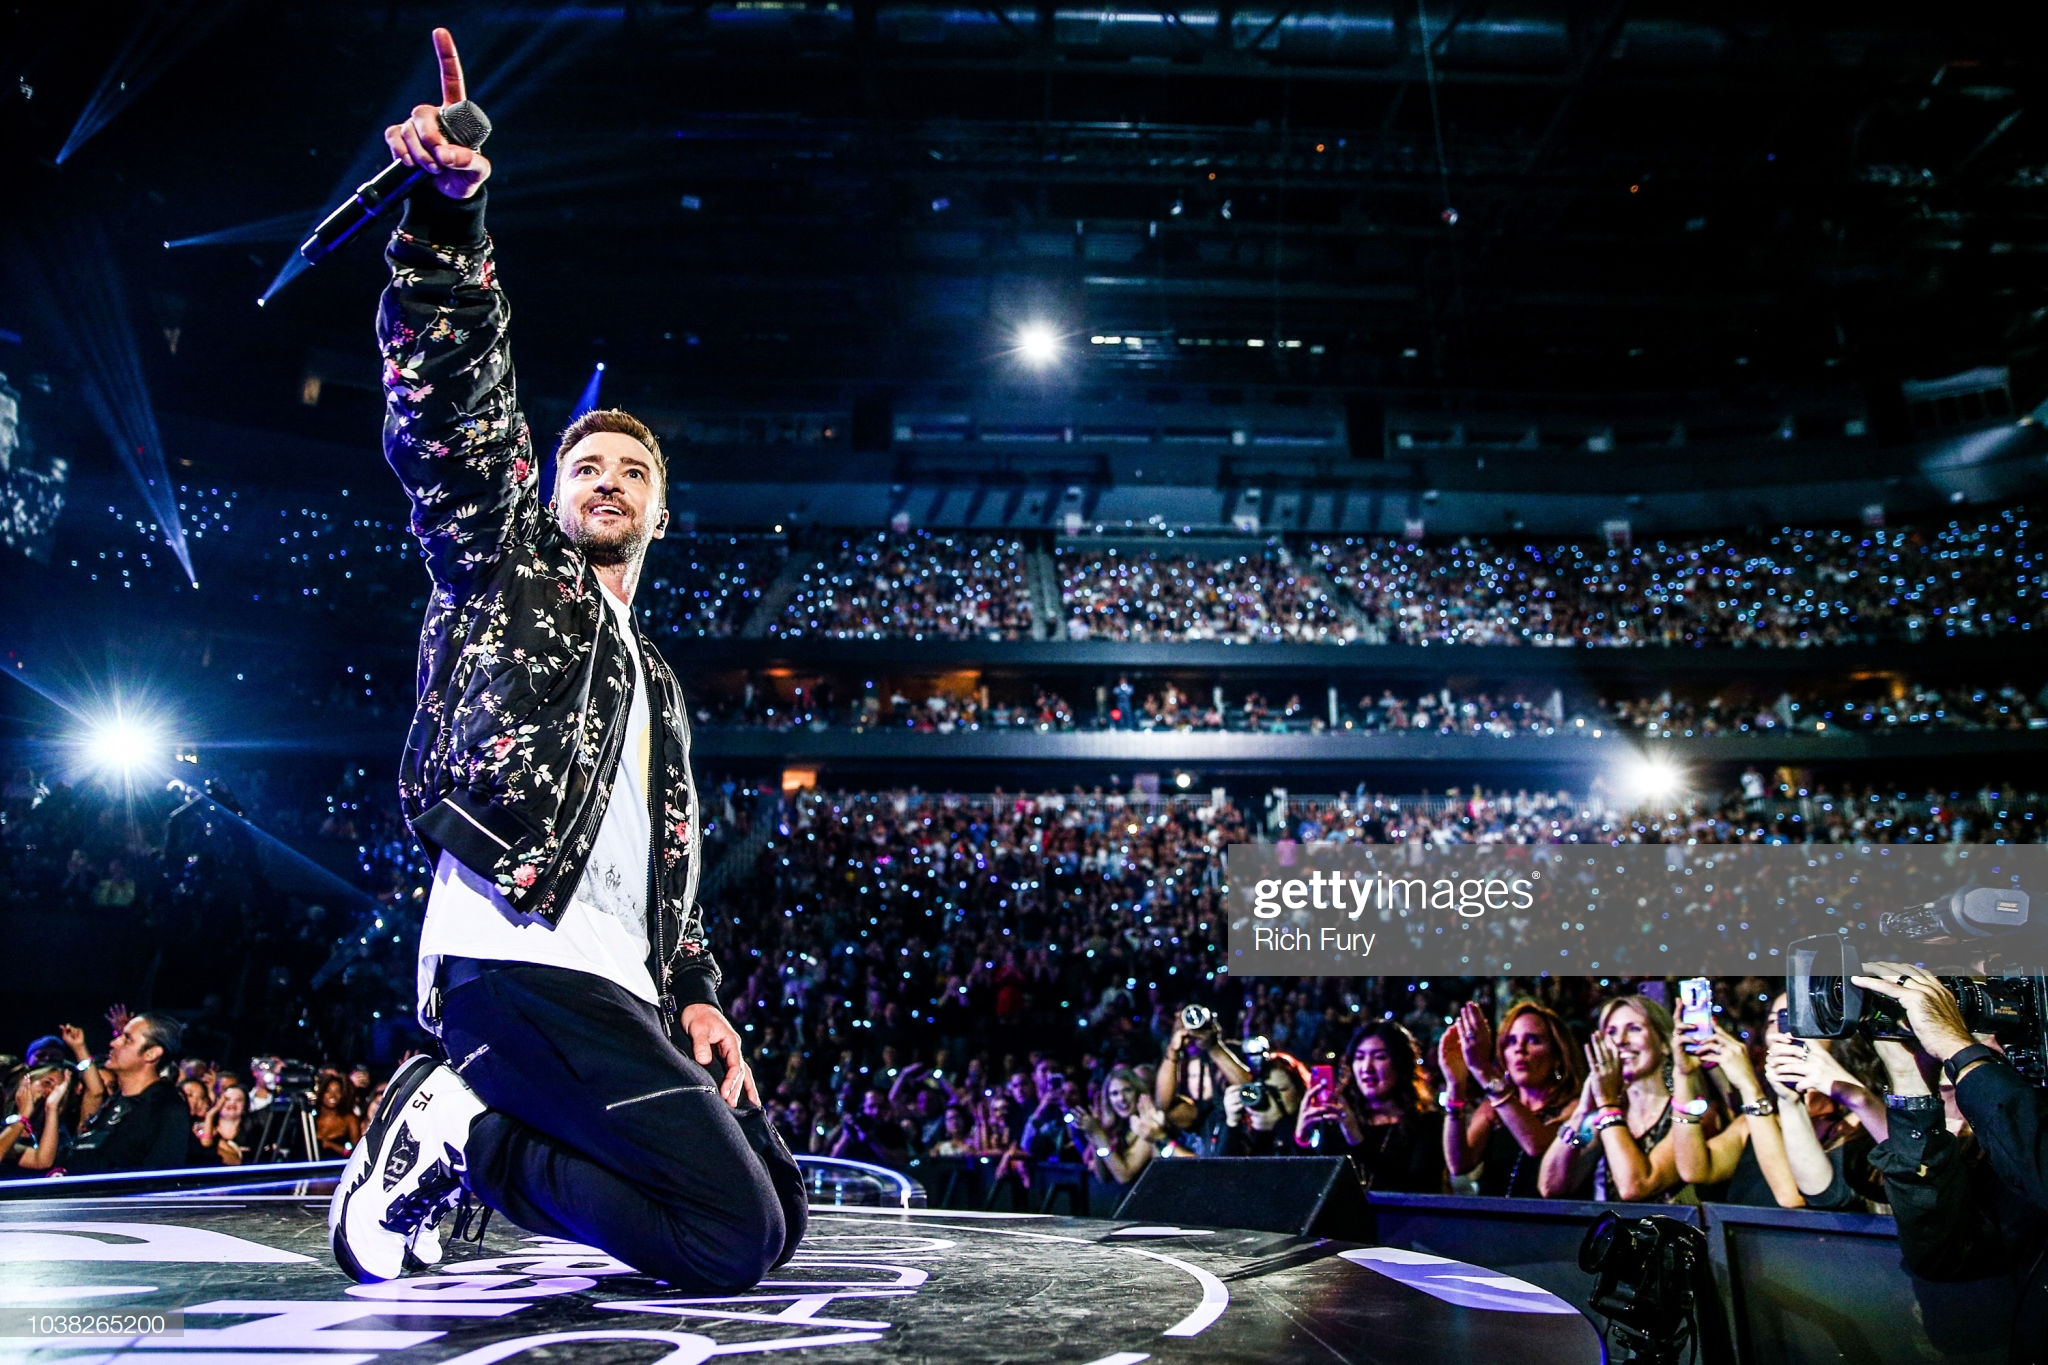 gettyimages-1038265200-2048x2048.jpg